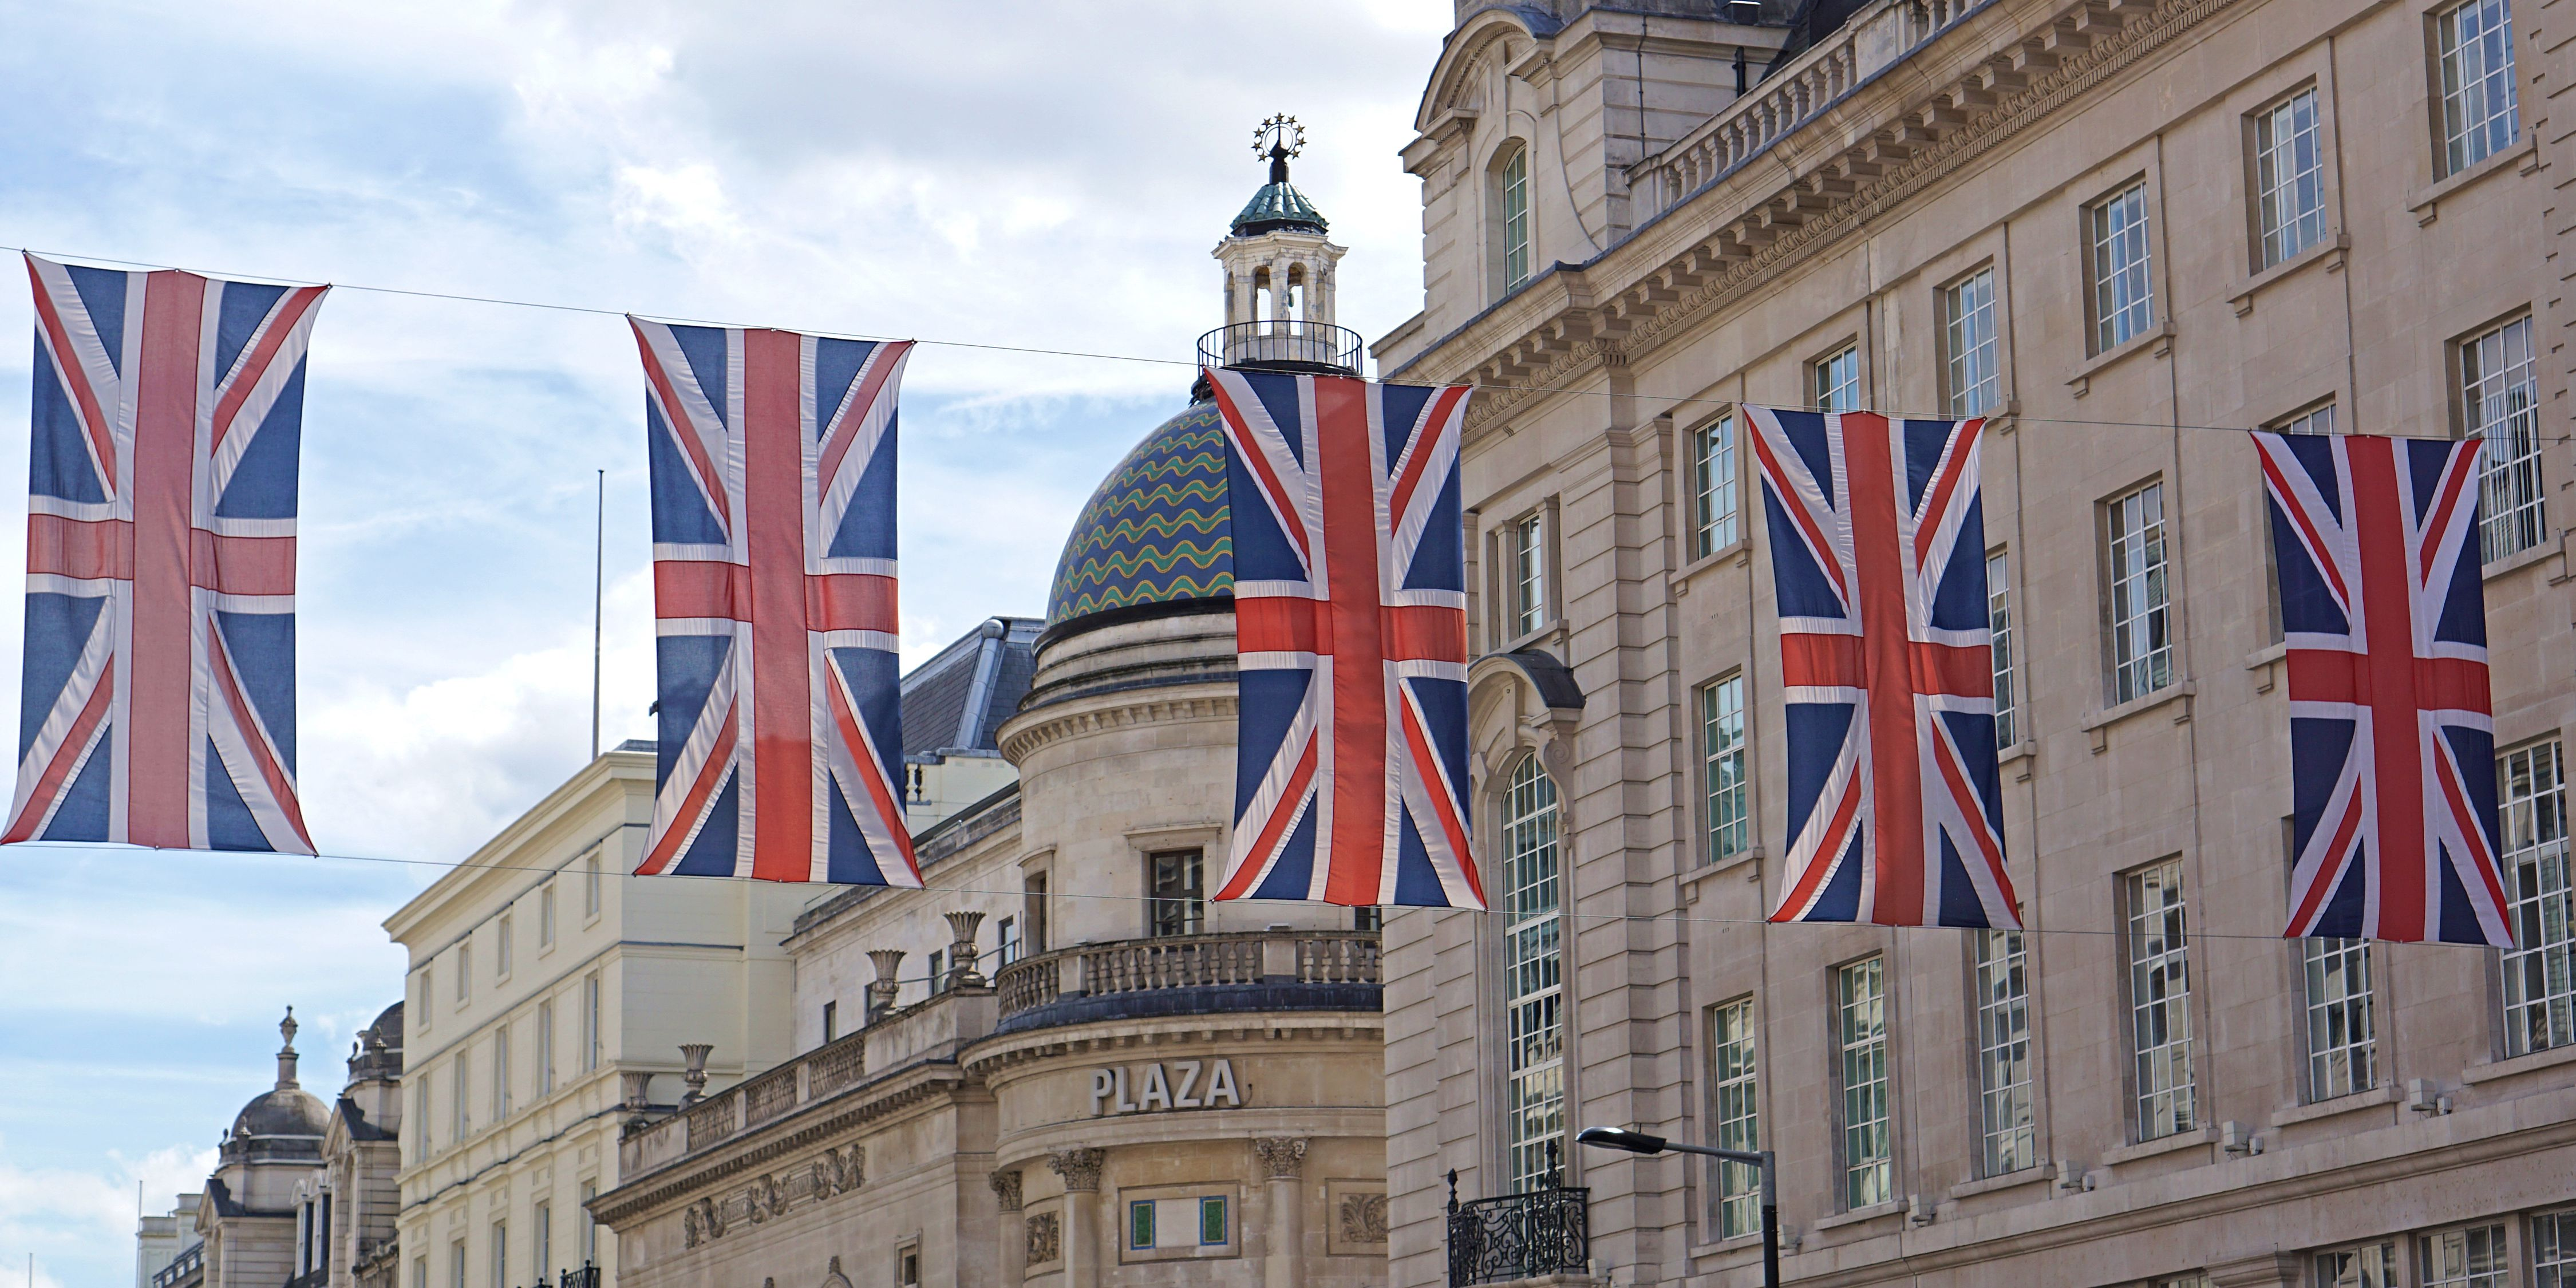 String of Union Jacks, Regent Street, London